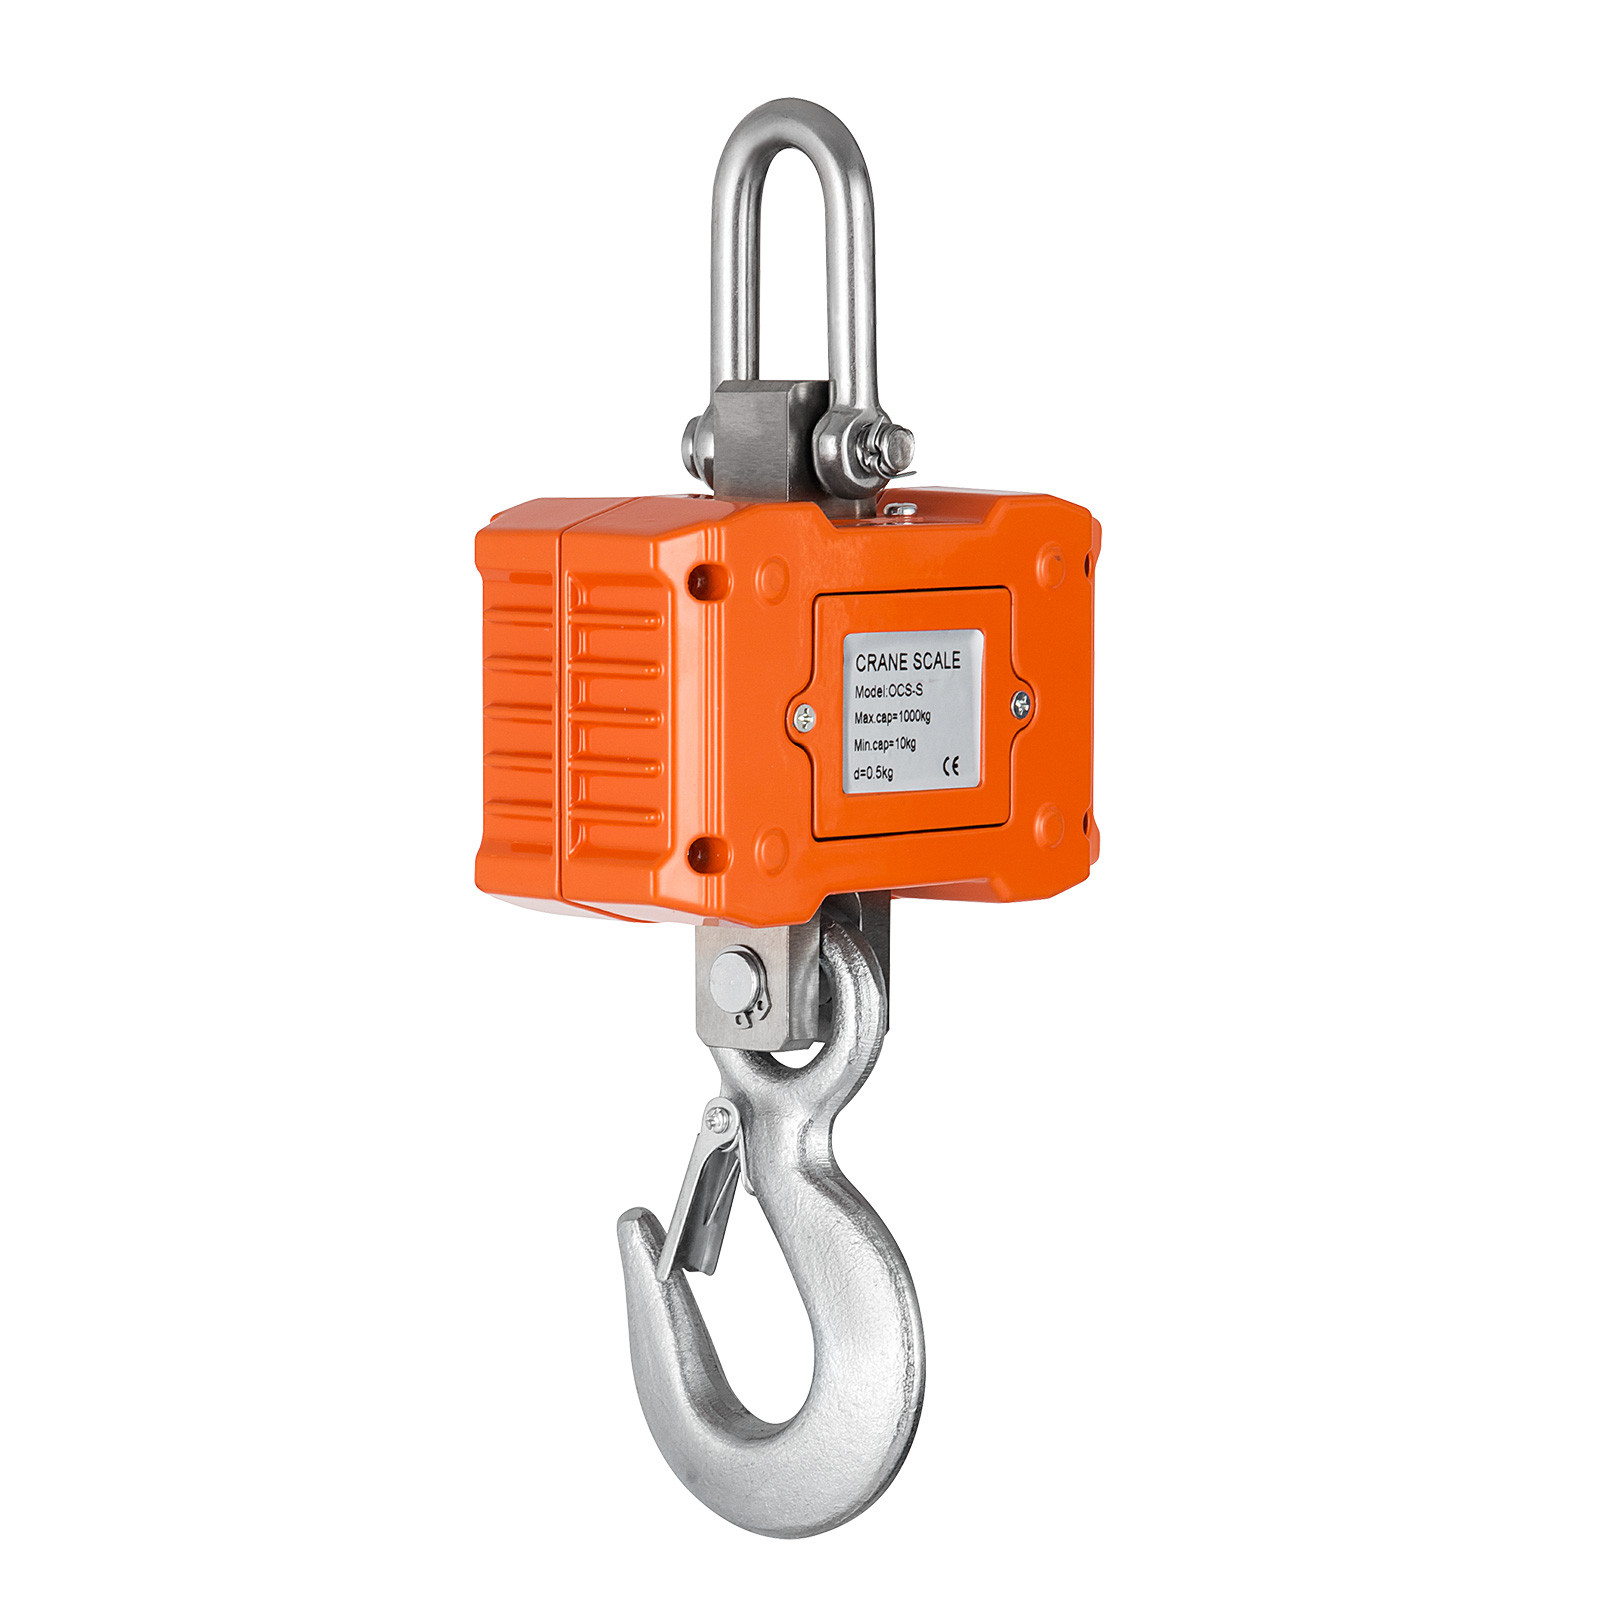 thumbnail 19 - 1T/3T/5T Digital Crane Scales Hanging Scale Electronic Scales Accurate Sensitive